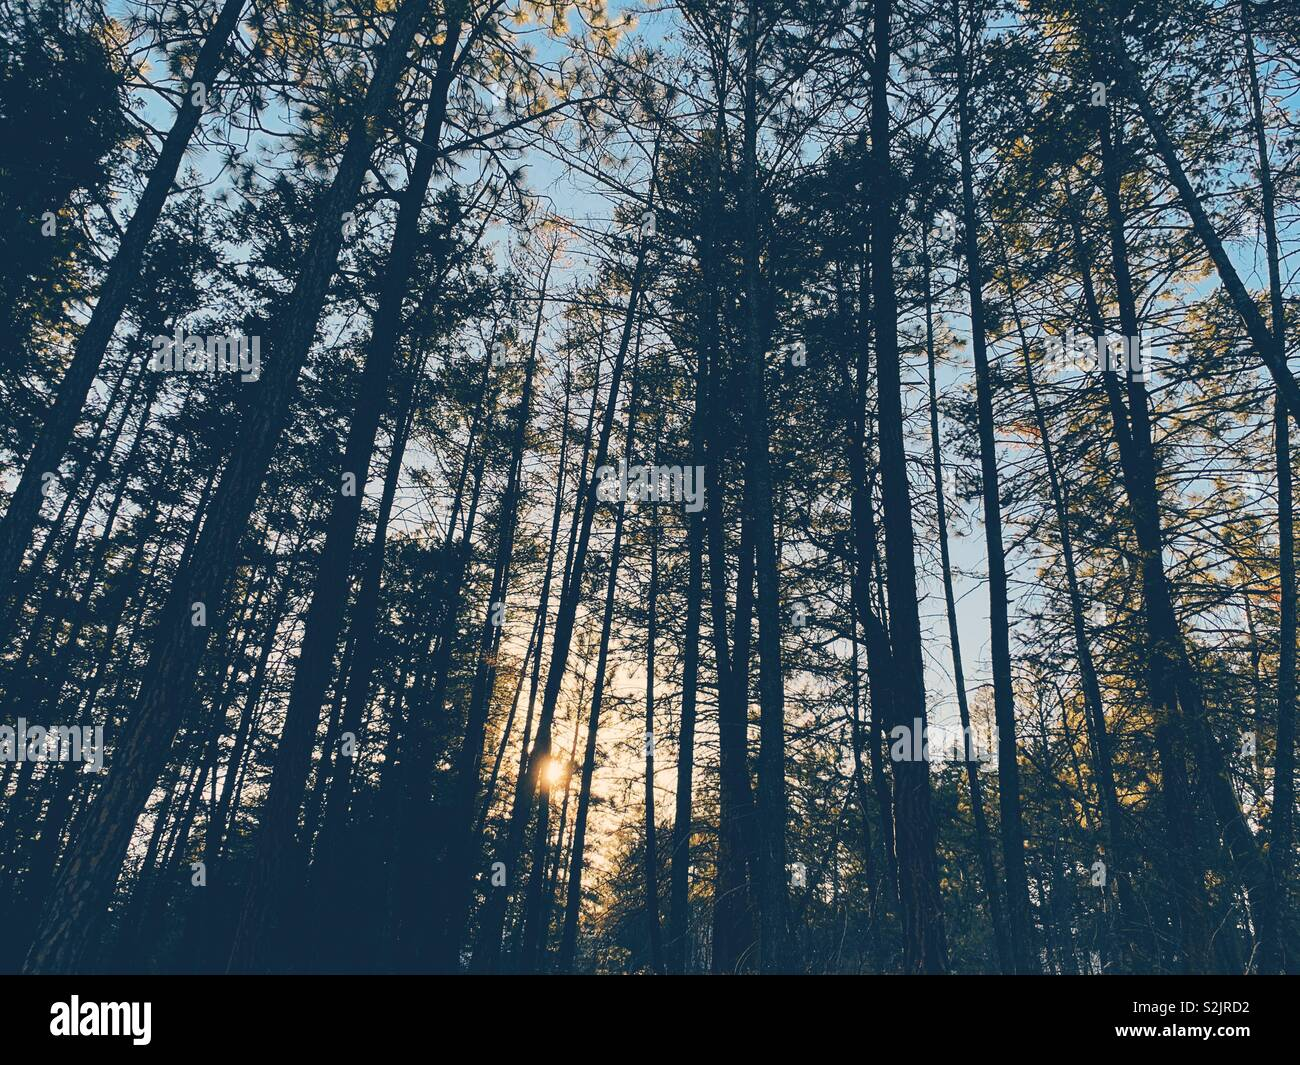 Sunset through the trees of an evergreen forest. - Stock Image